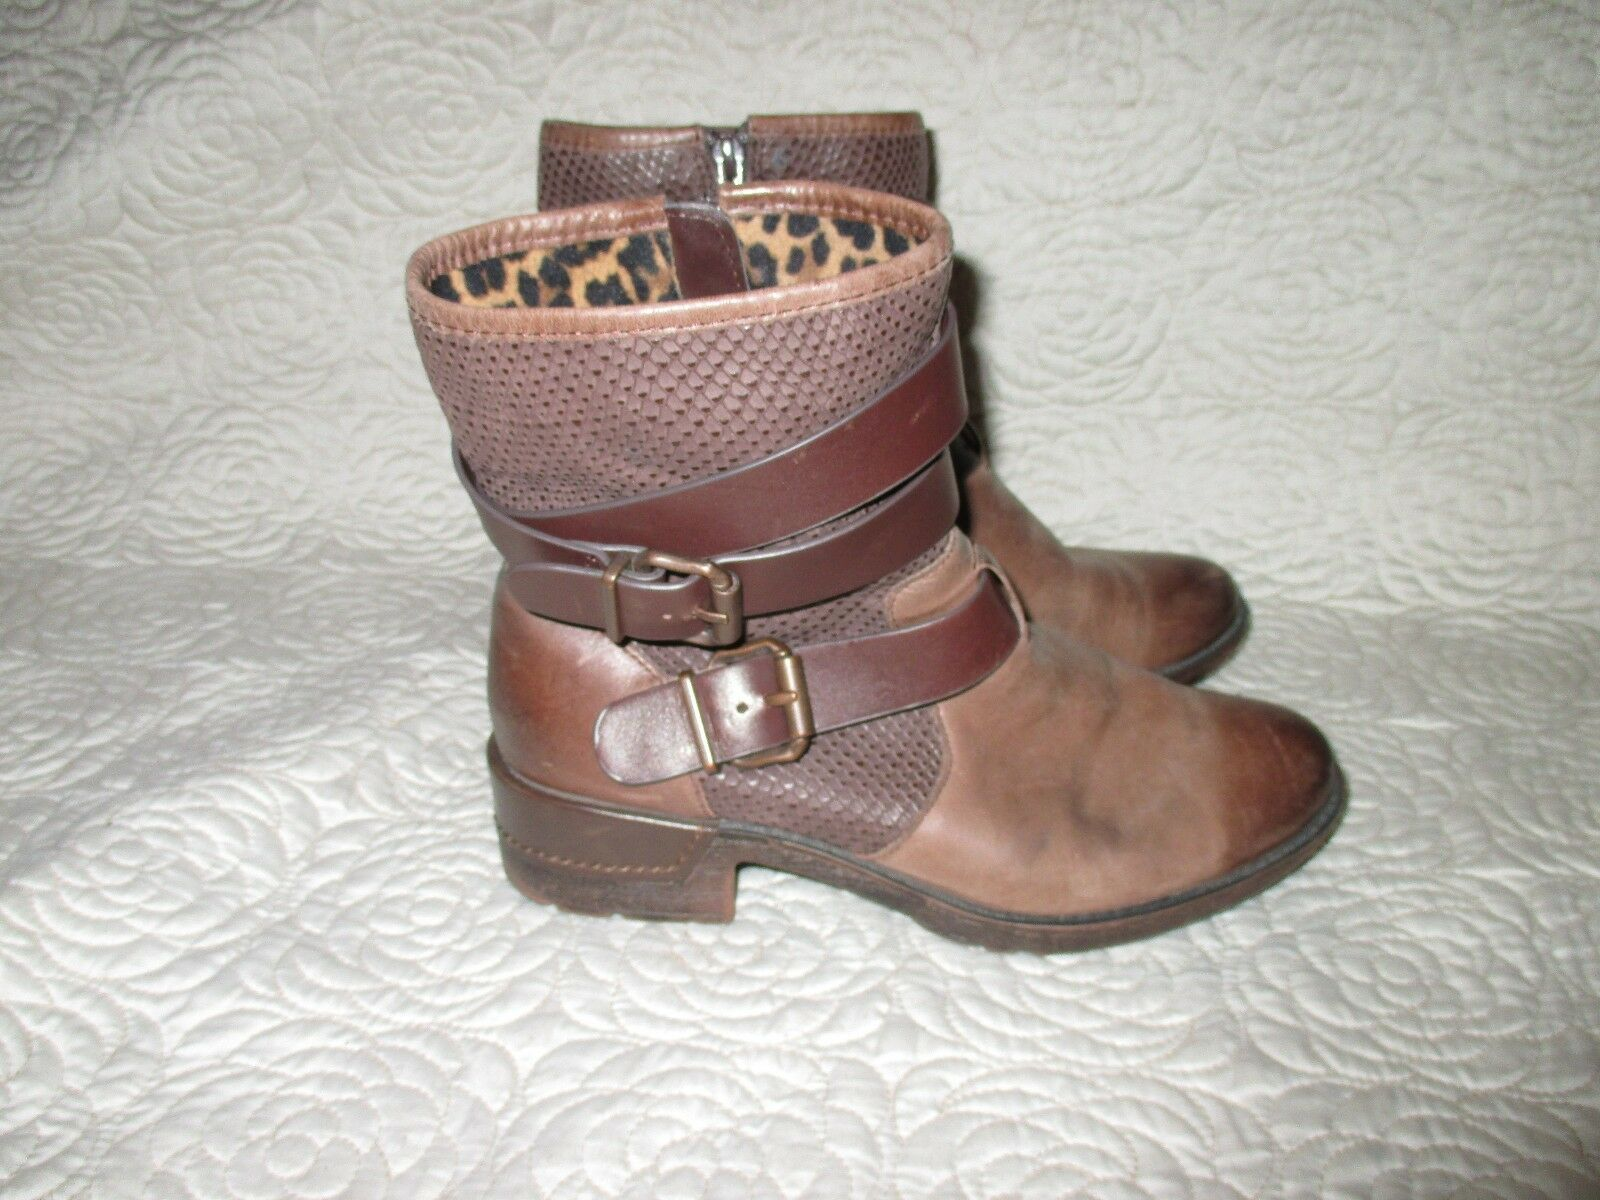 SOFFT Saxton Whiskey Brown Leather Boots Boots Boots Women's Size 8.5 M Buckle Ankle ce0c6f